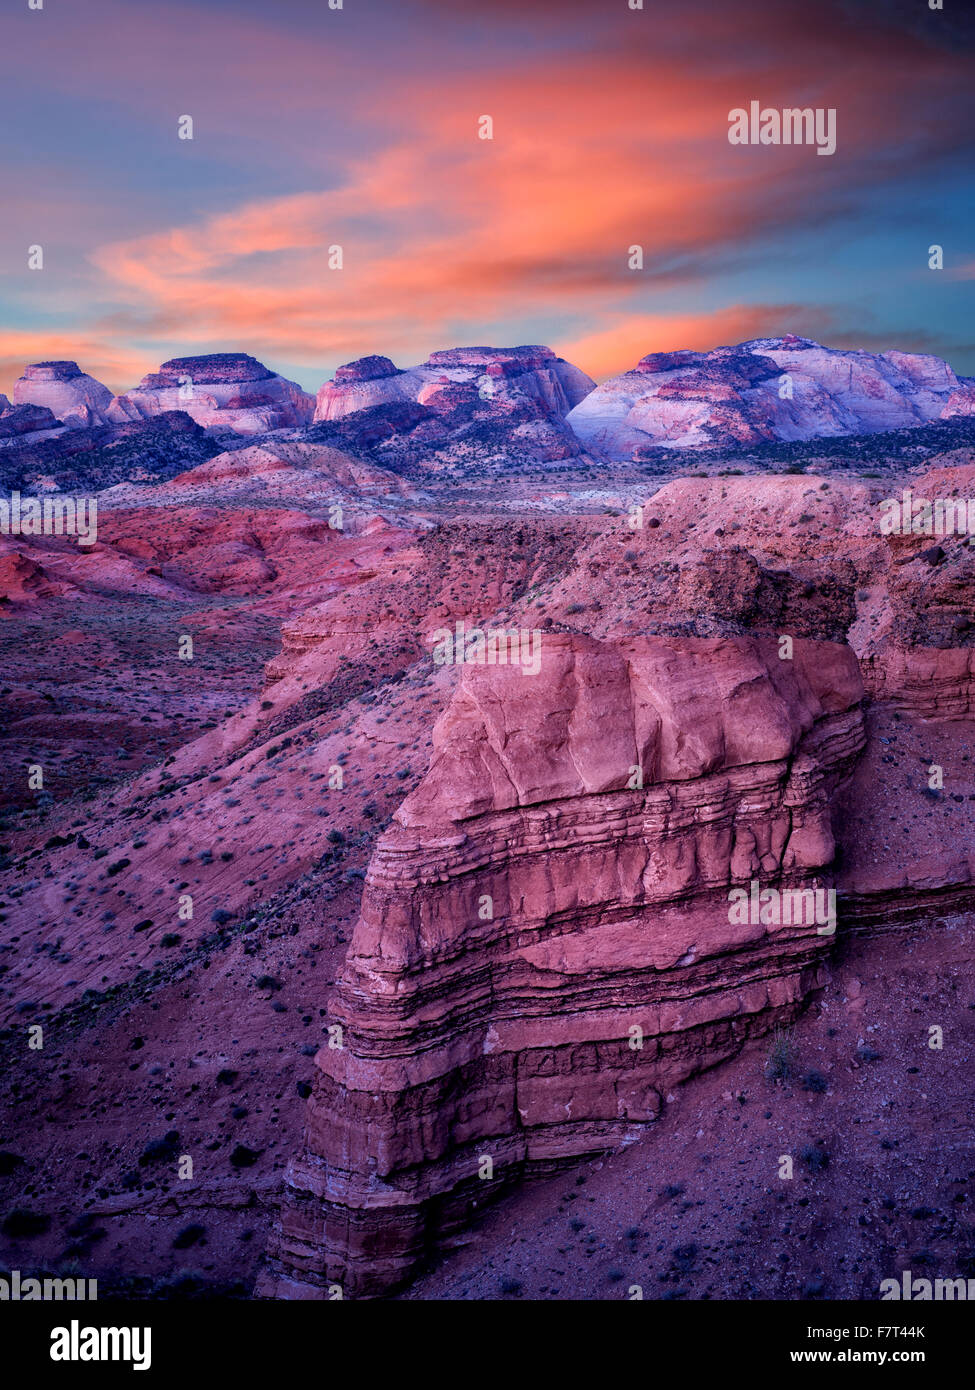 Sonnenaufgang auf der Hartnet Süd Wüste Waterpocket Fold. Capitol Reef National Park, Utah Stockbild